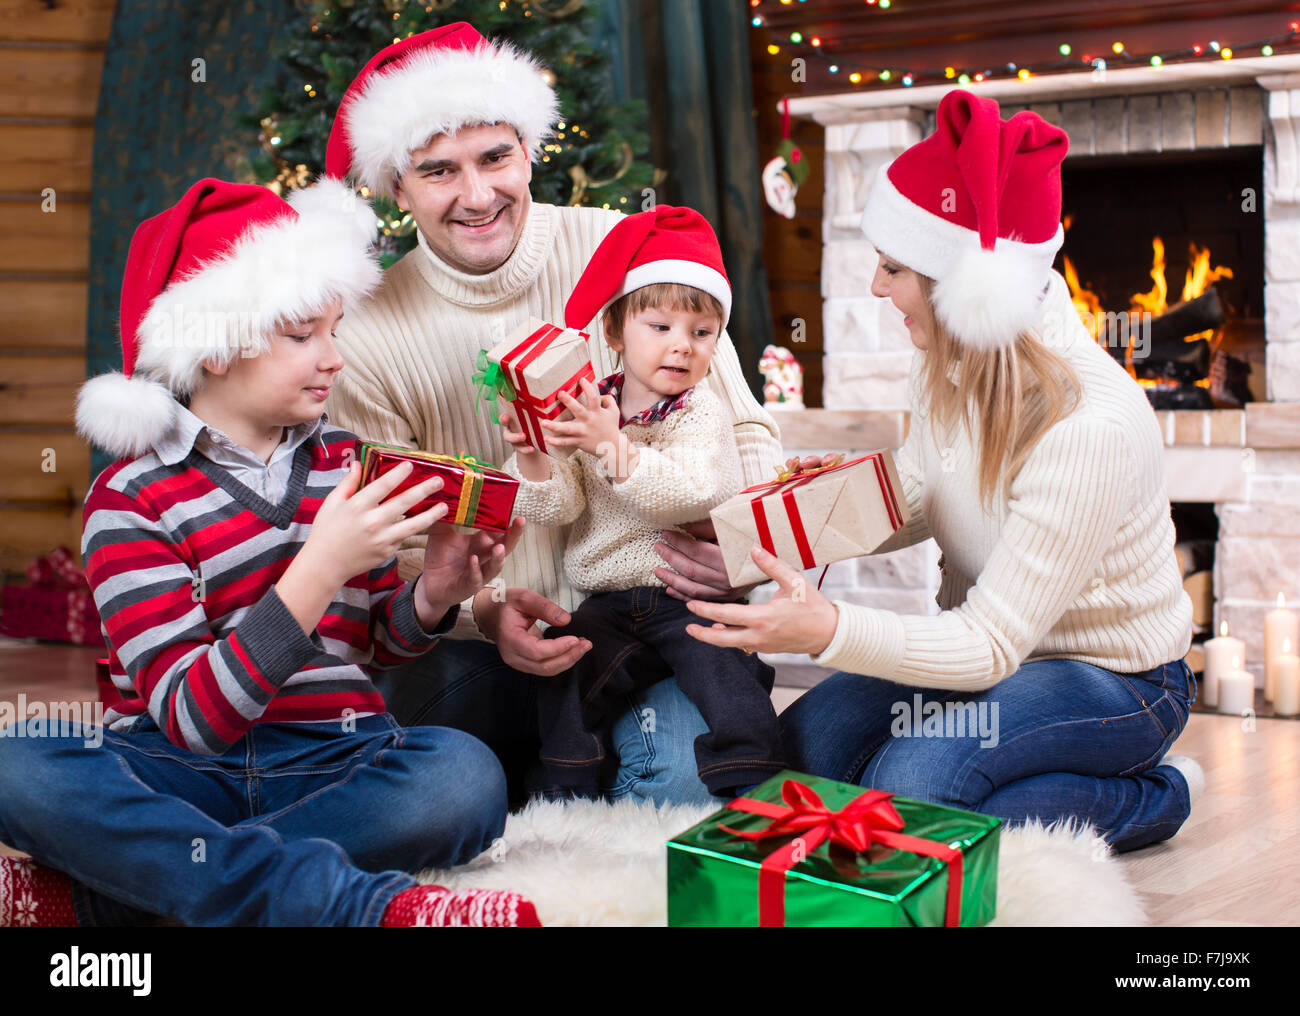 Family exchanging gifts in front of Christmas tree - Stock Image